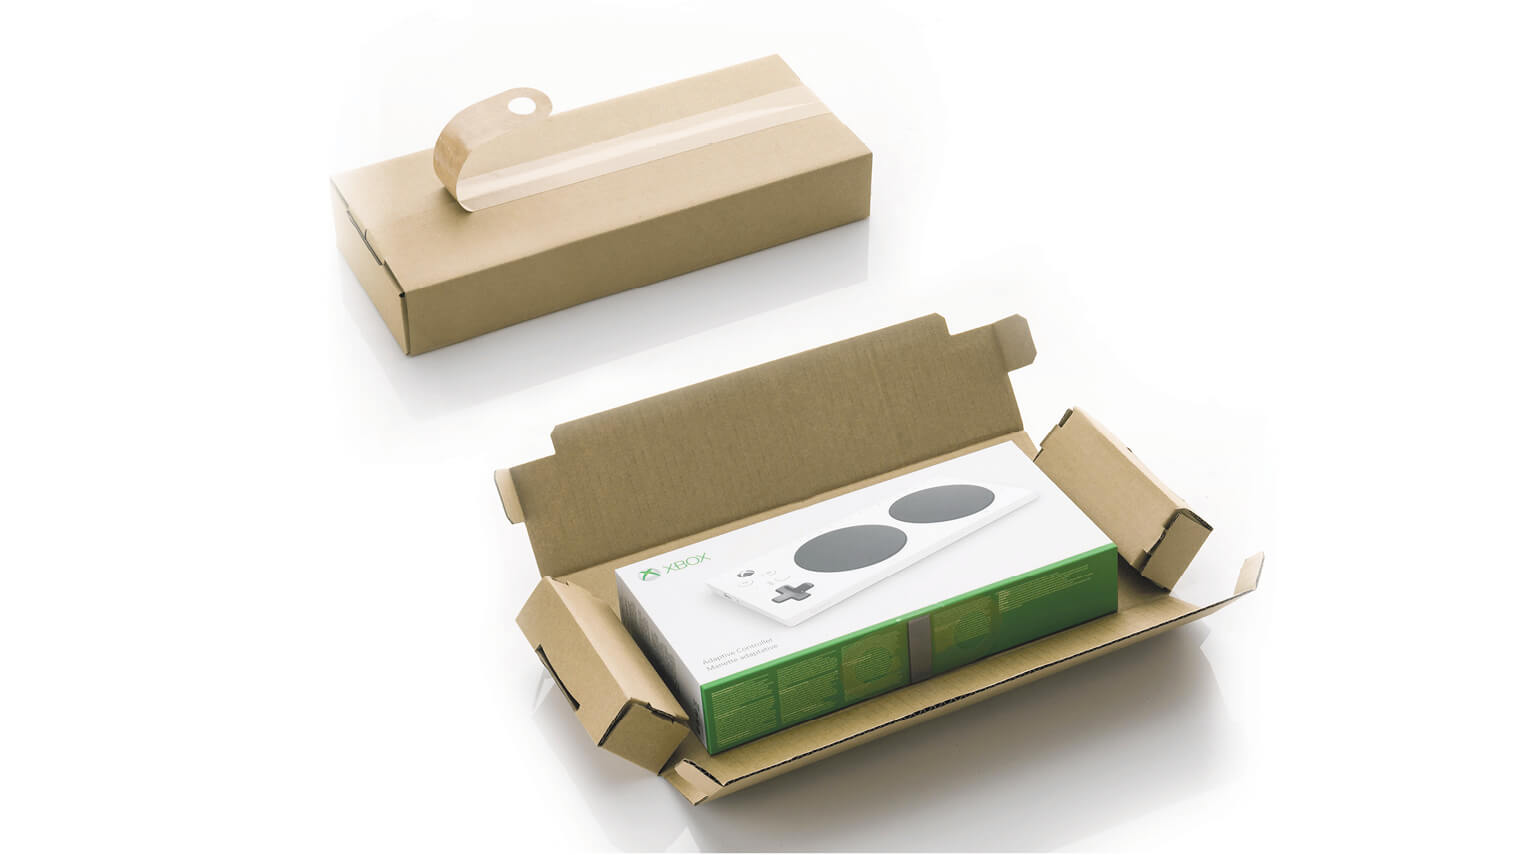 packaging-innovations-for-the-disabled (1)